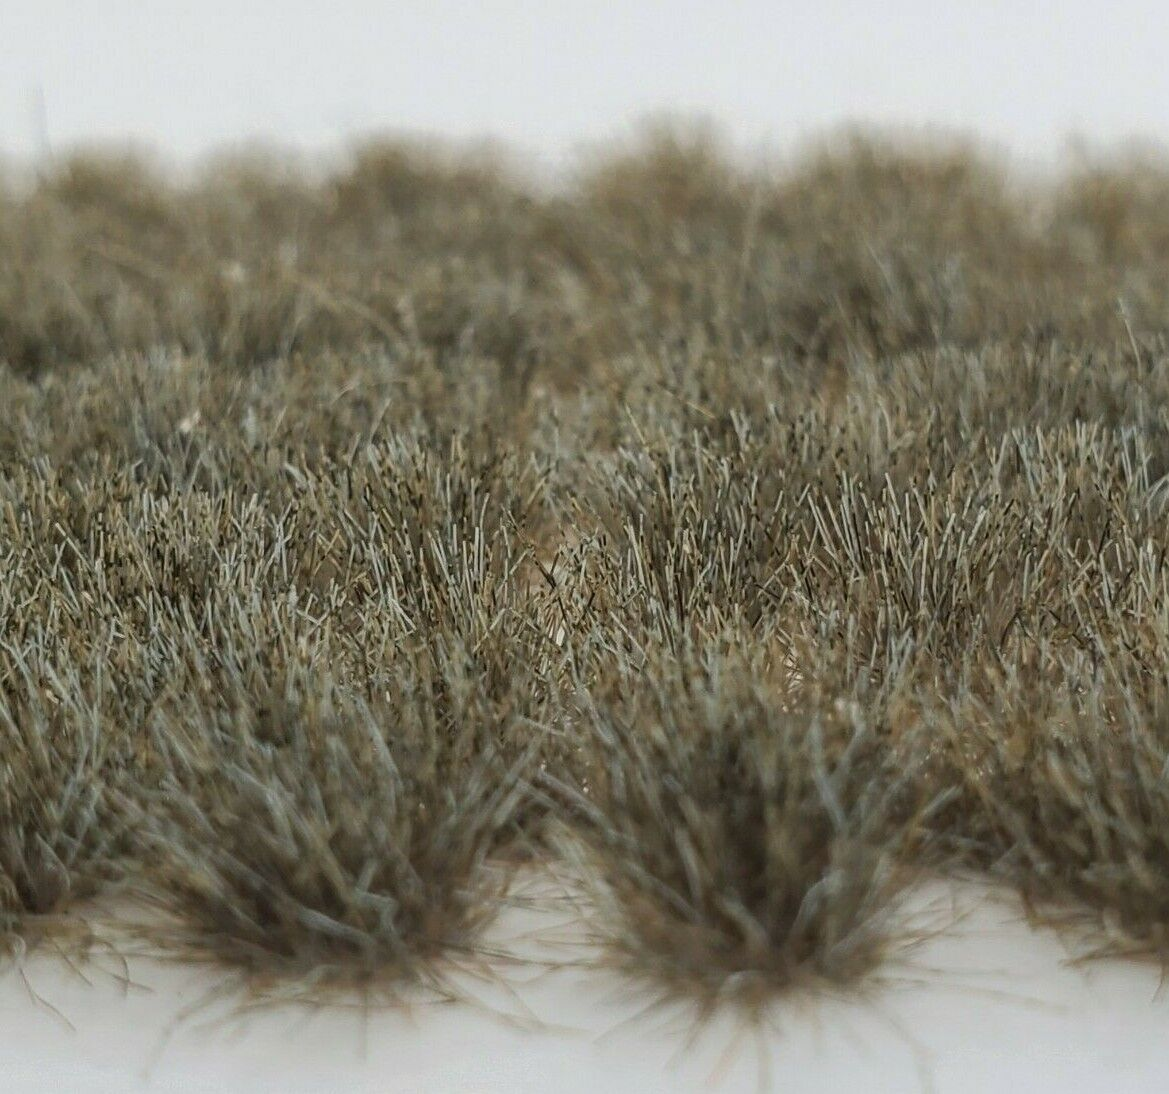 Self Adhesive Static Grass Tufts for Miniature Scenery -Eerie Swamp- 6mm